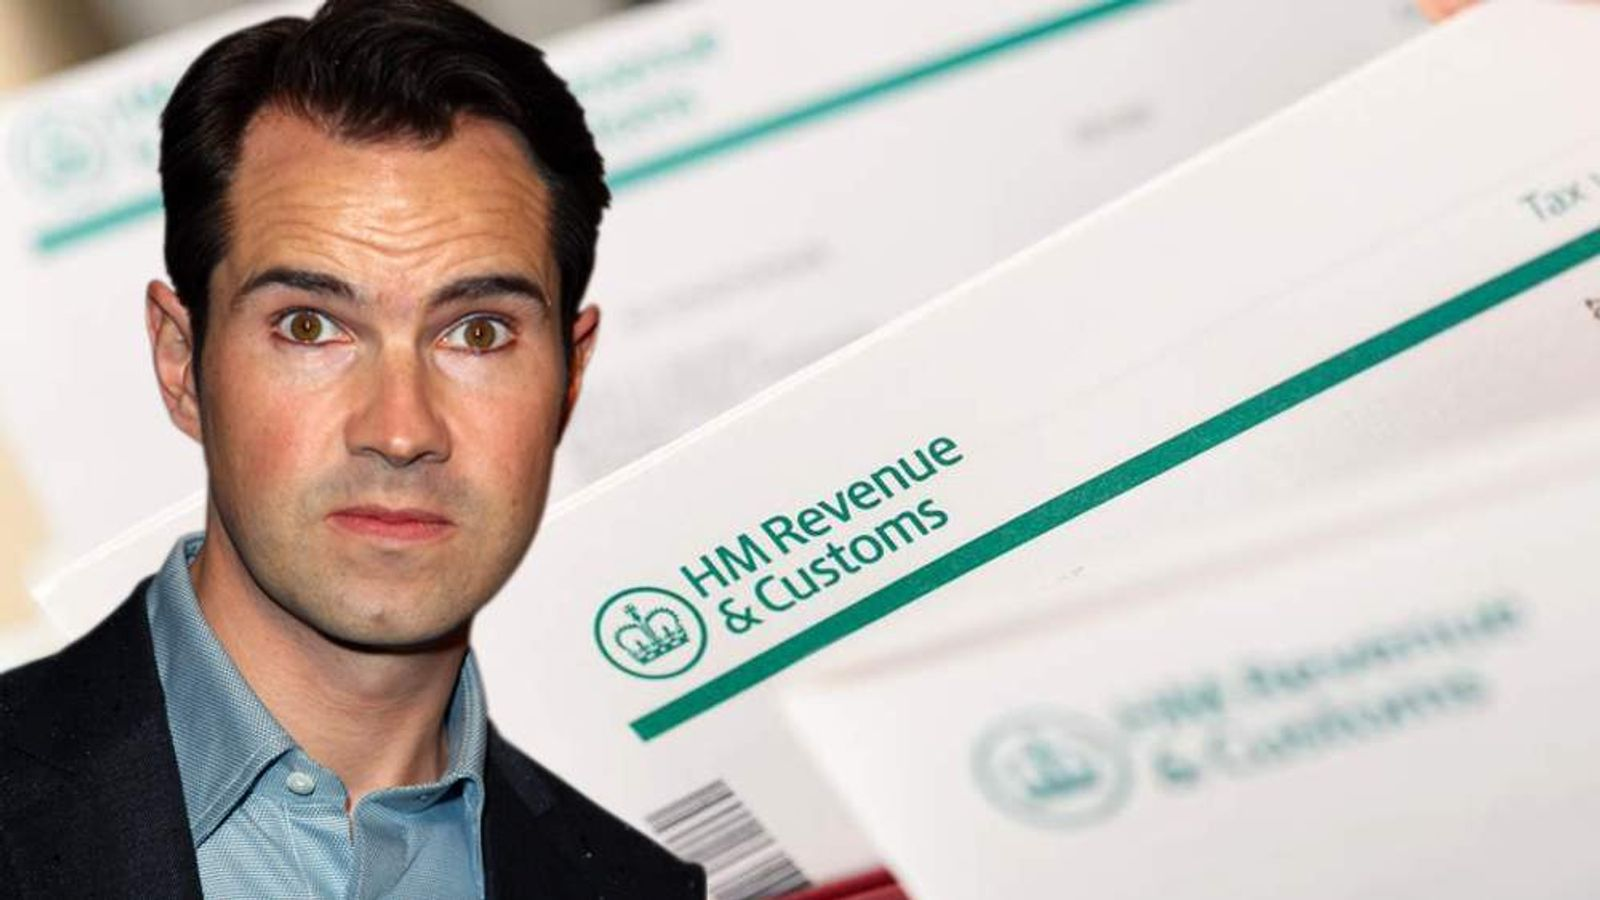 Jimmy Carr admitted using a tax avoidance scheme to reduce the amount he paid to HMRC